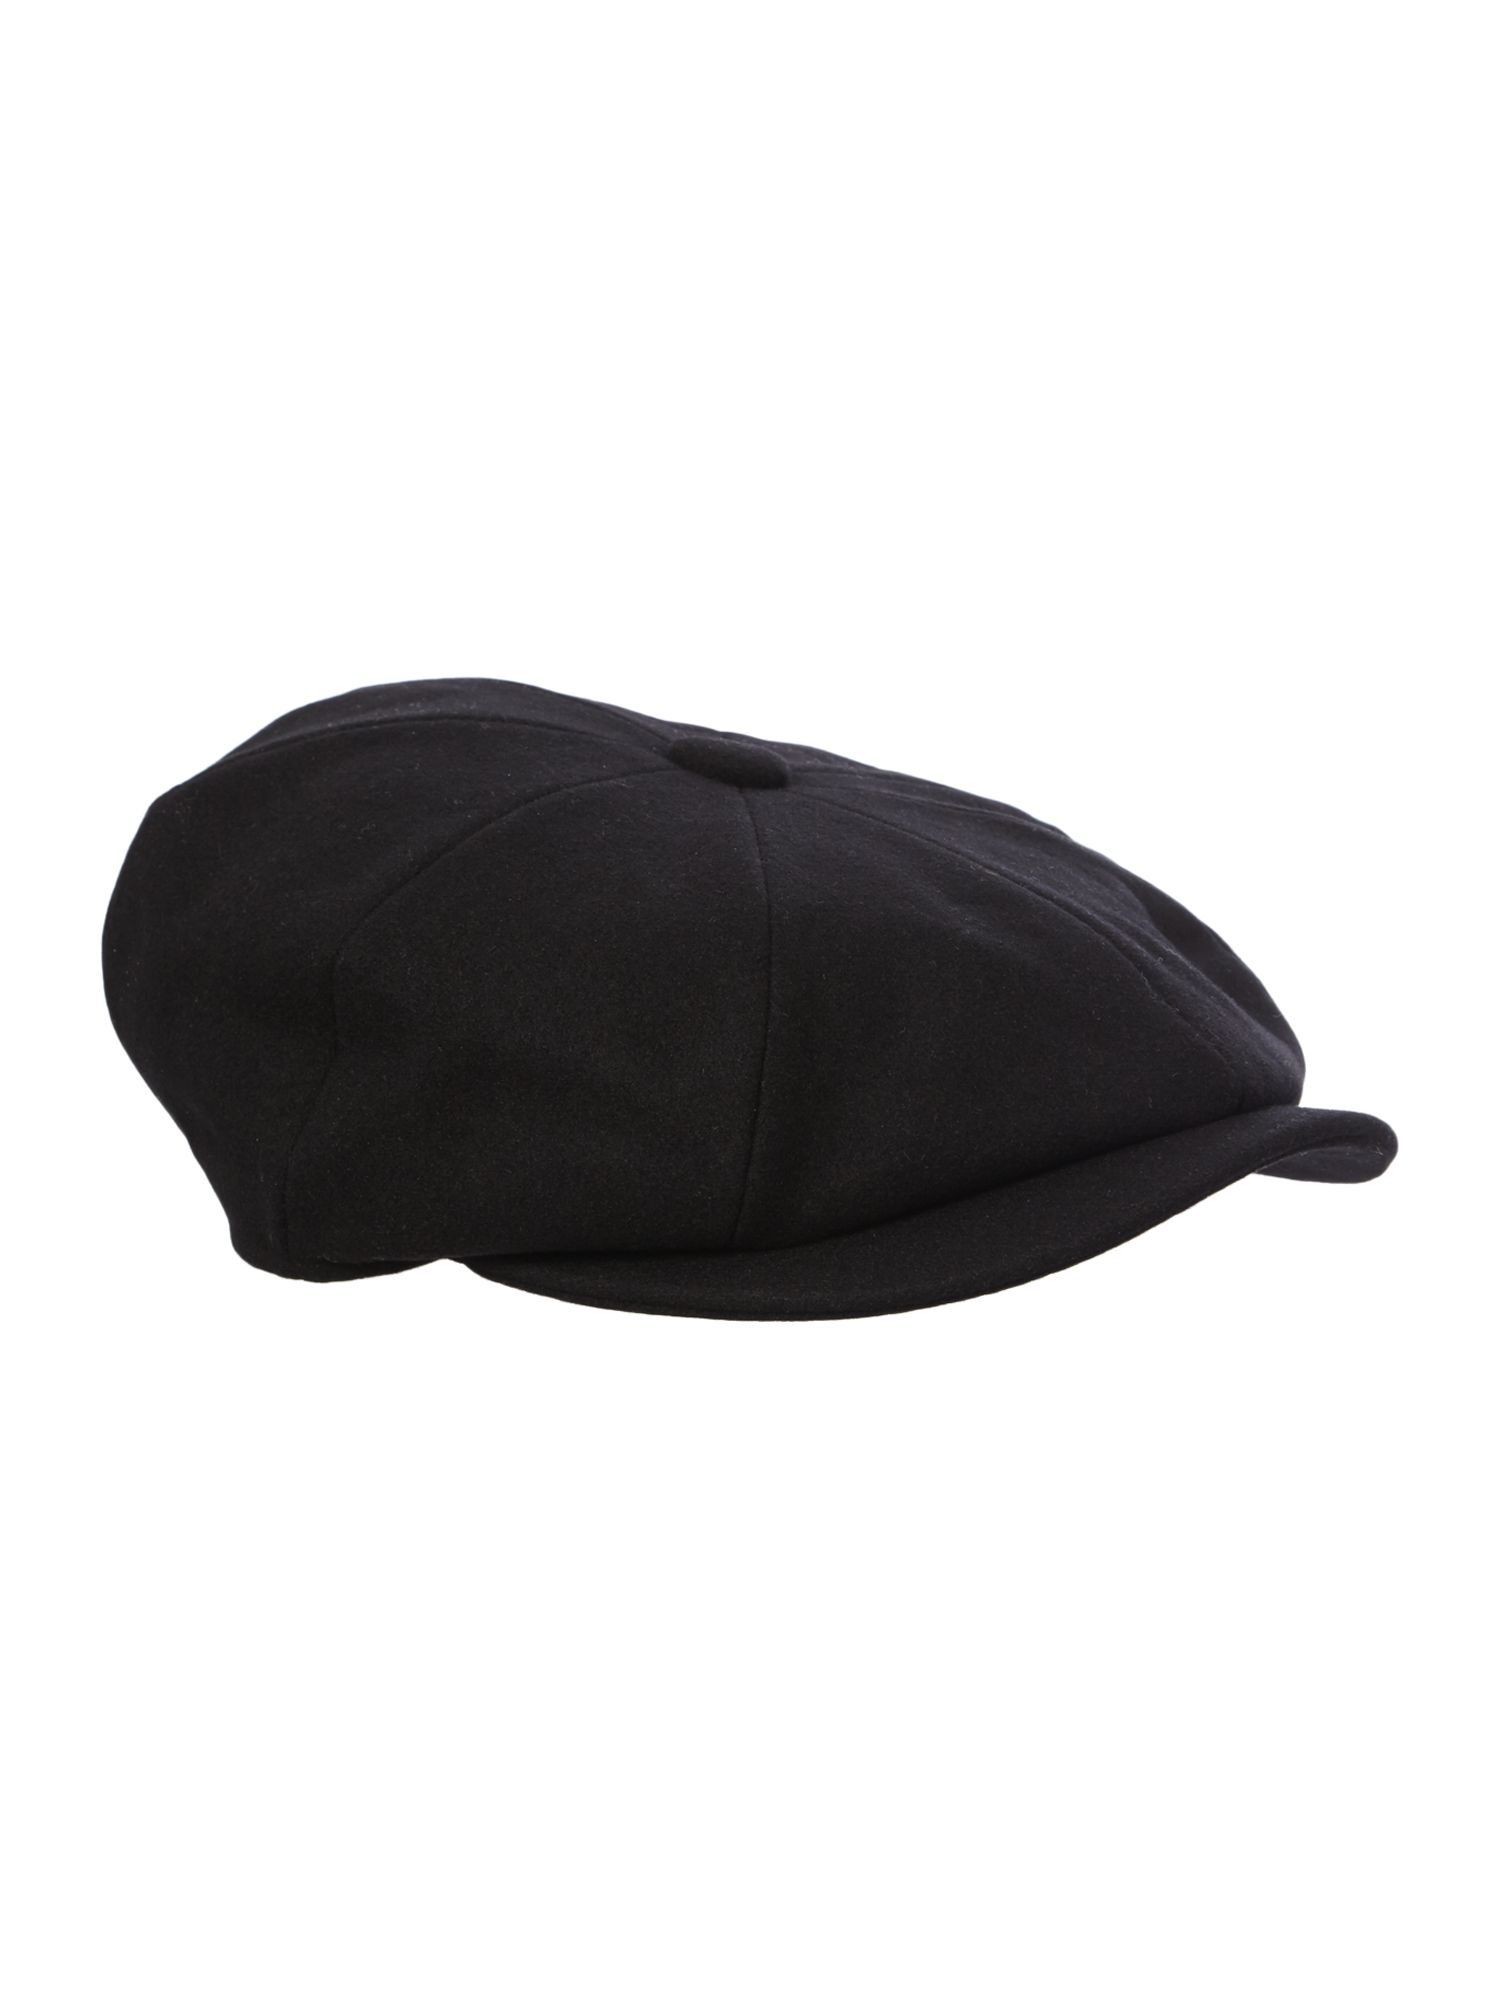 Alfie melton baker boy hat